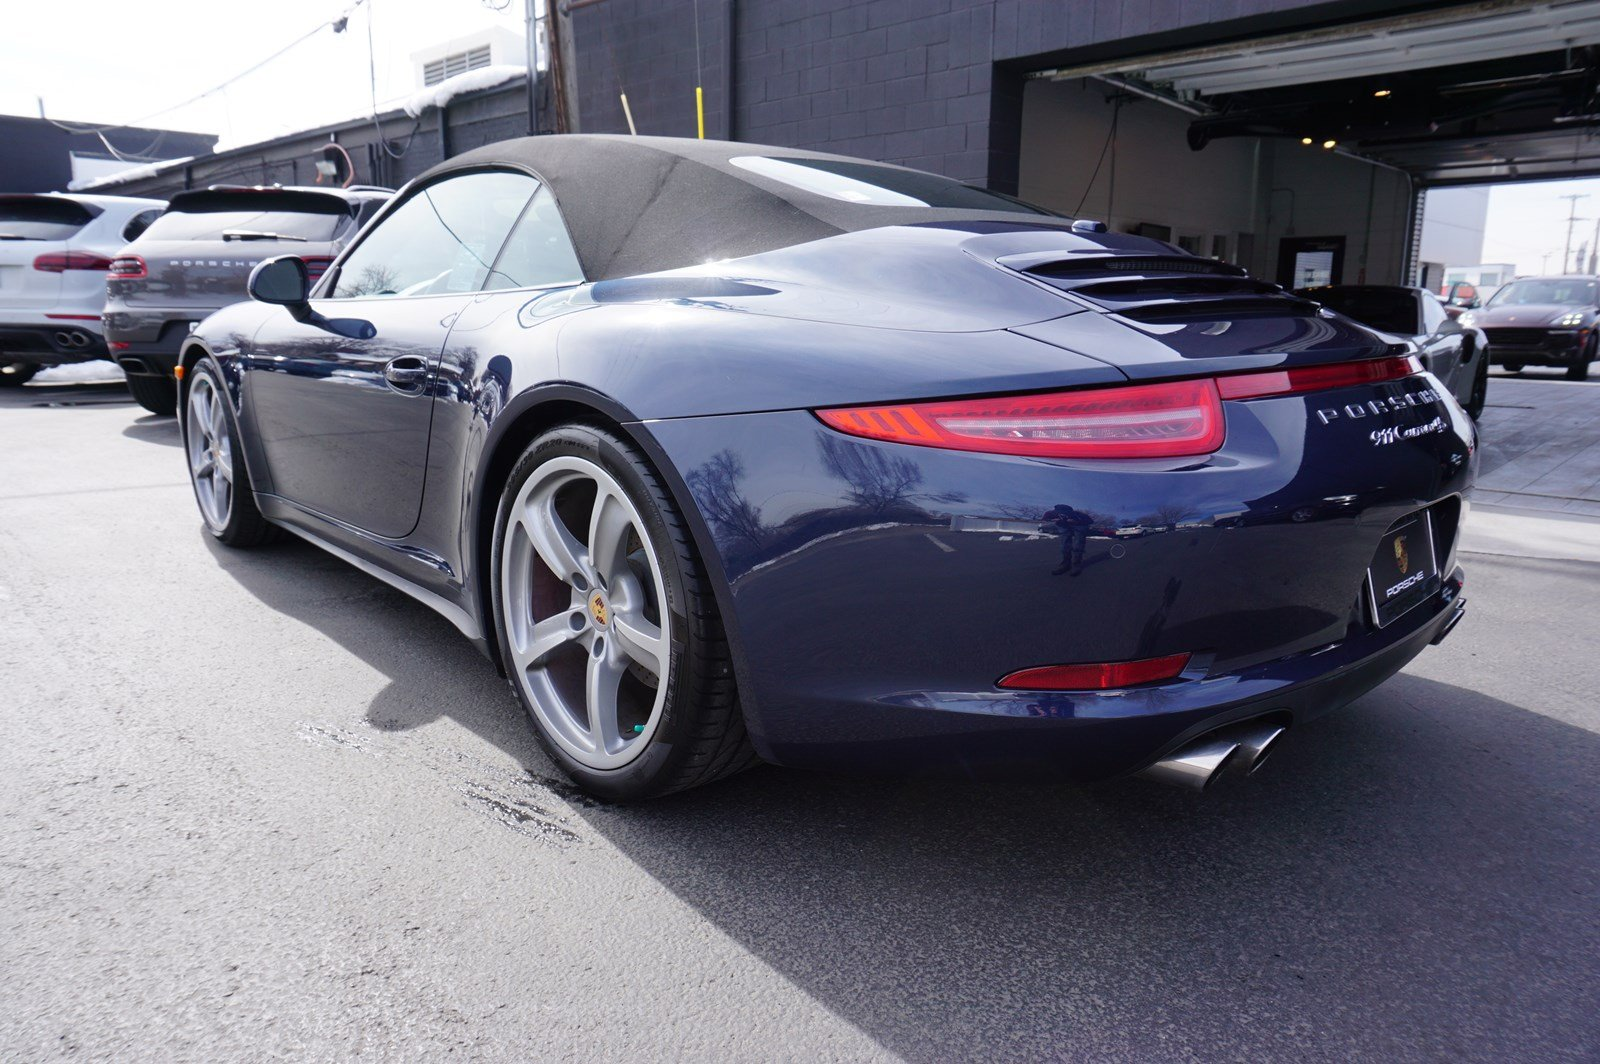 Certified Pre-Owned 2015 Porsche 911 Carrera 4S Cabriolet